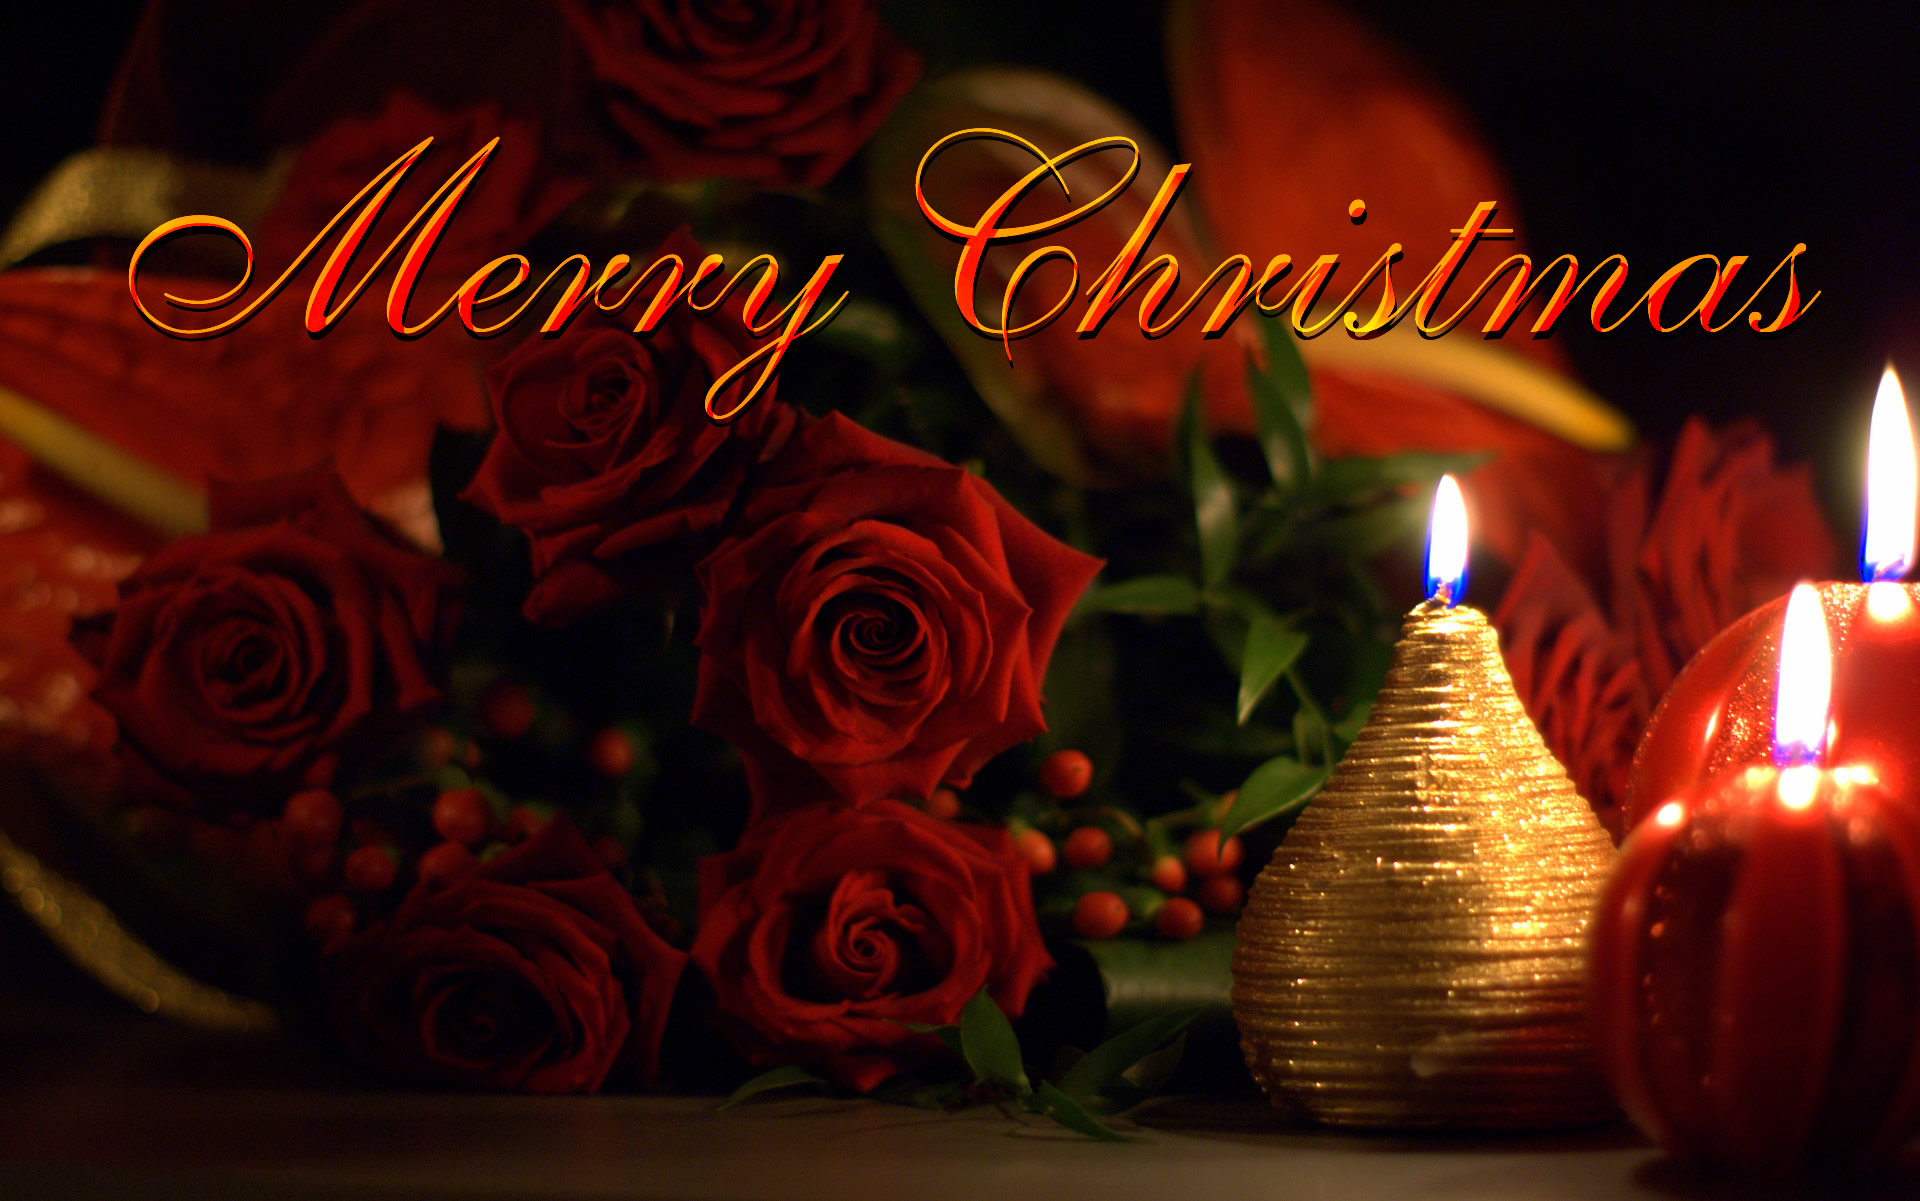 Merry Christmas Ecard Beautiful Roses And Candles Fre Hd Wallappers